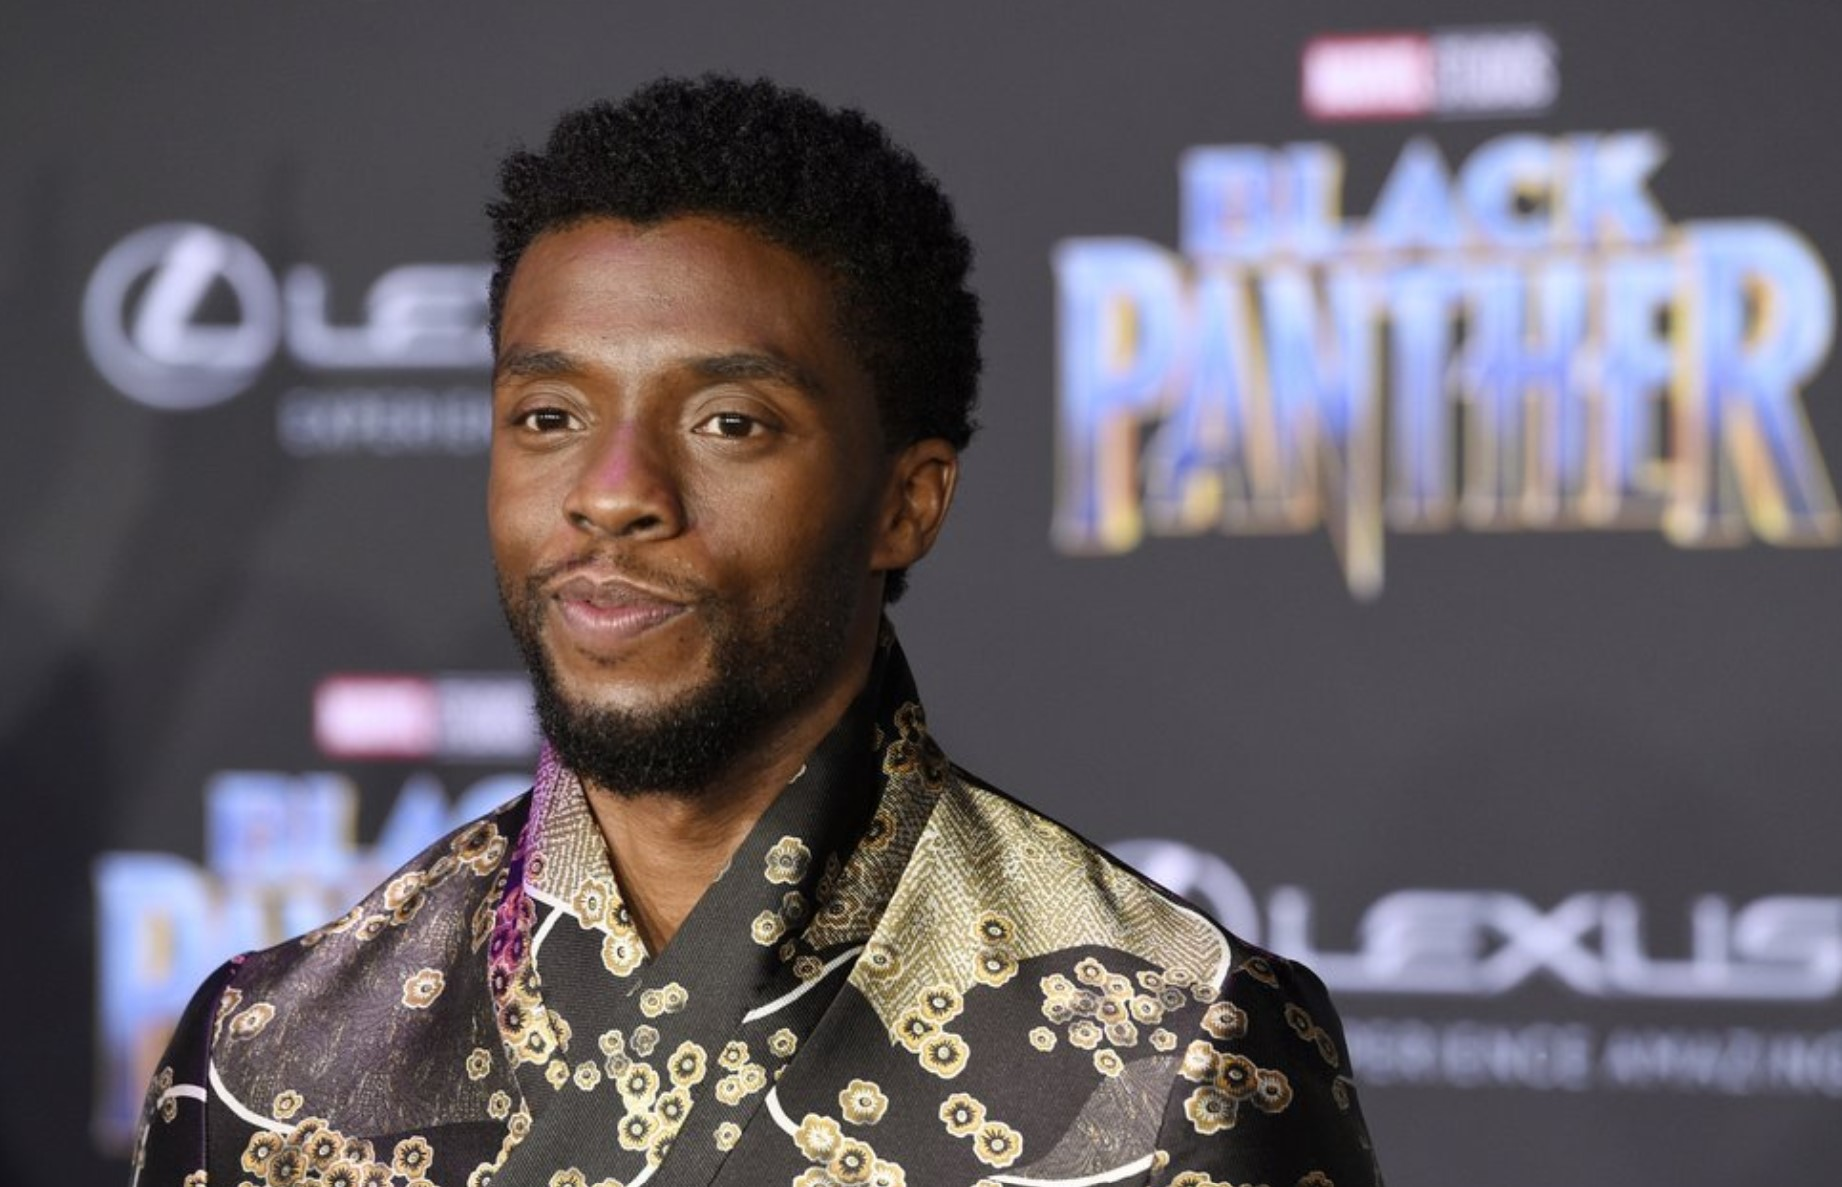 Chadwick Boseman, Black Panther star, dies at 43